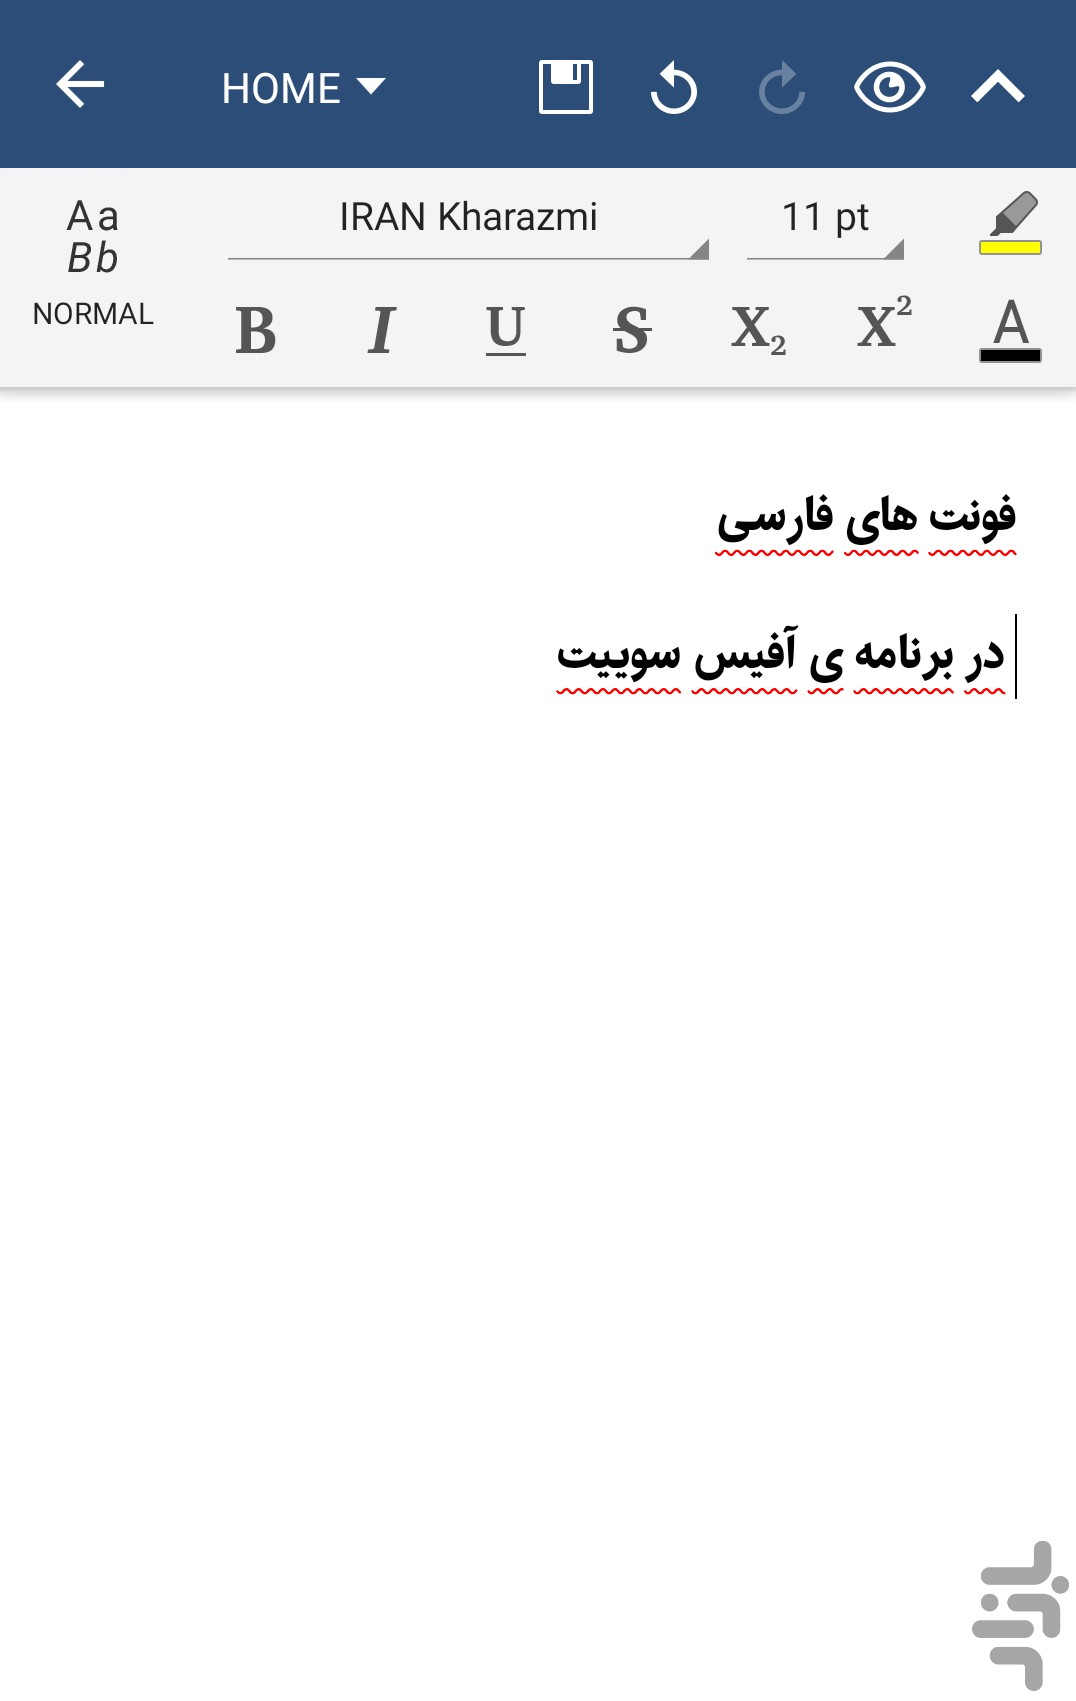 OfficeSuite Farsi Font Pack